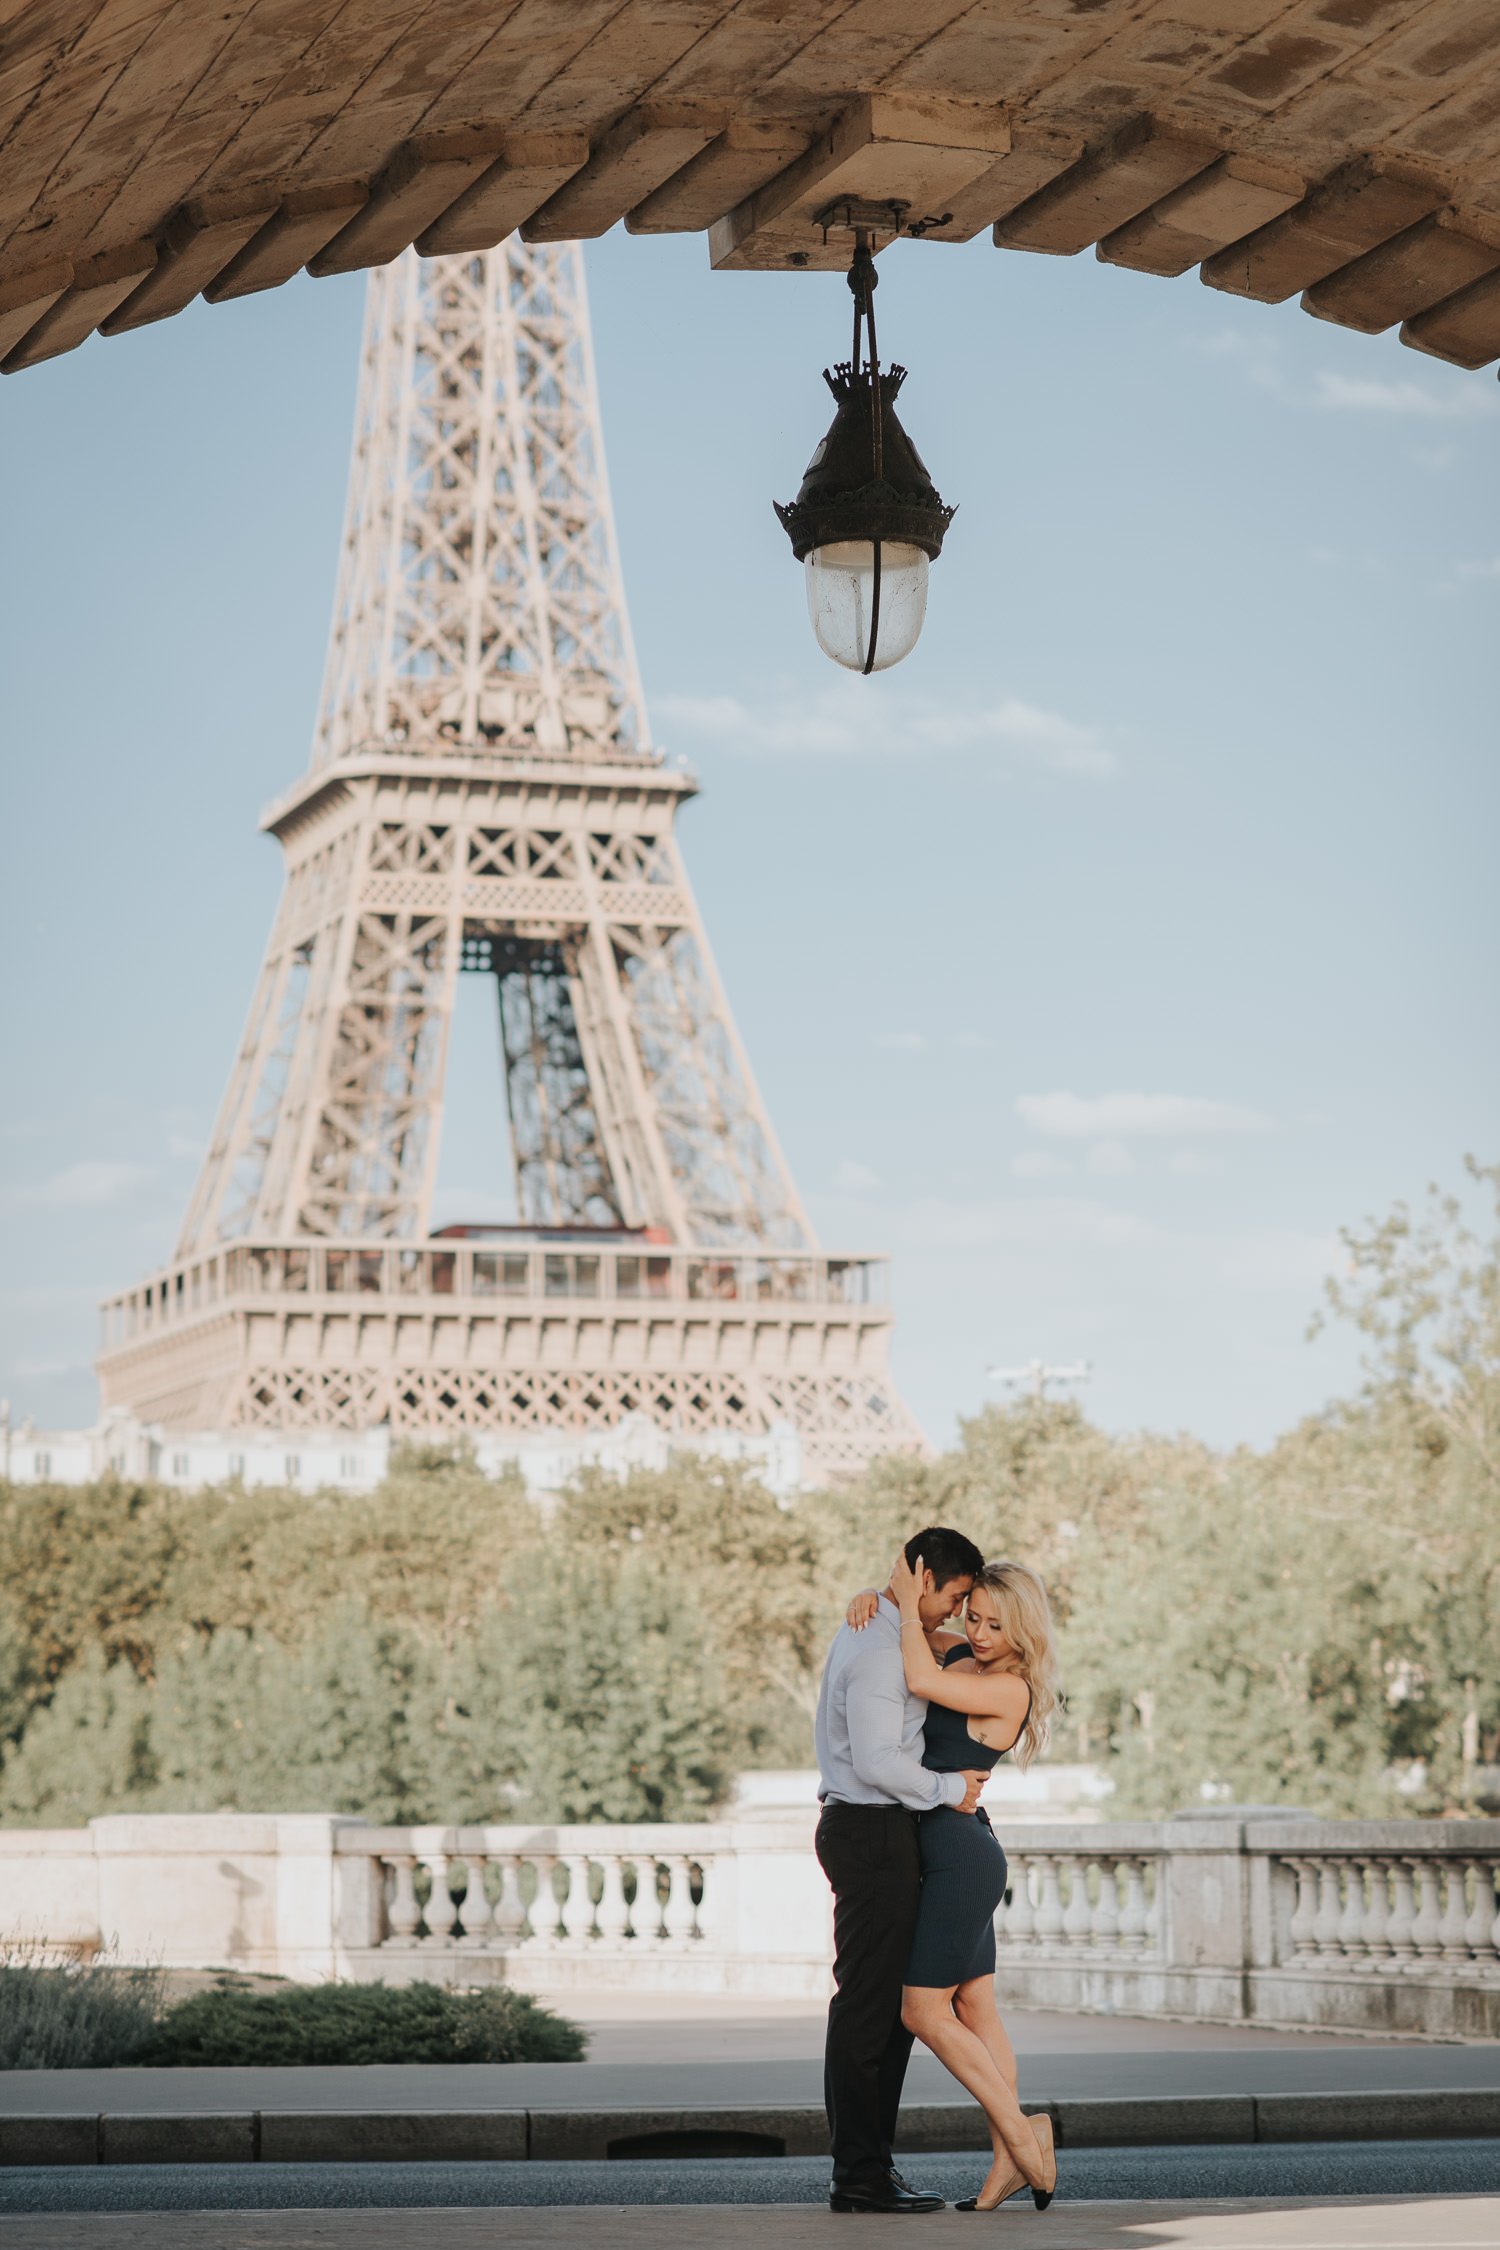 Eiffel Tower Engagement